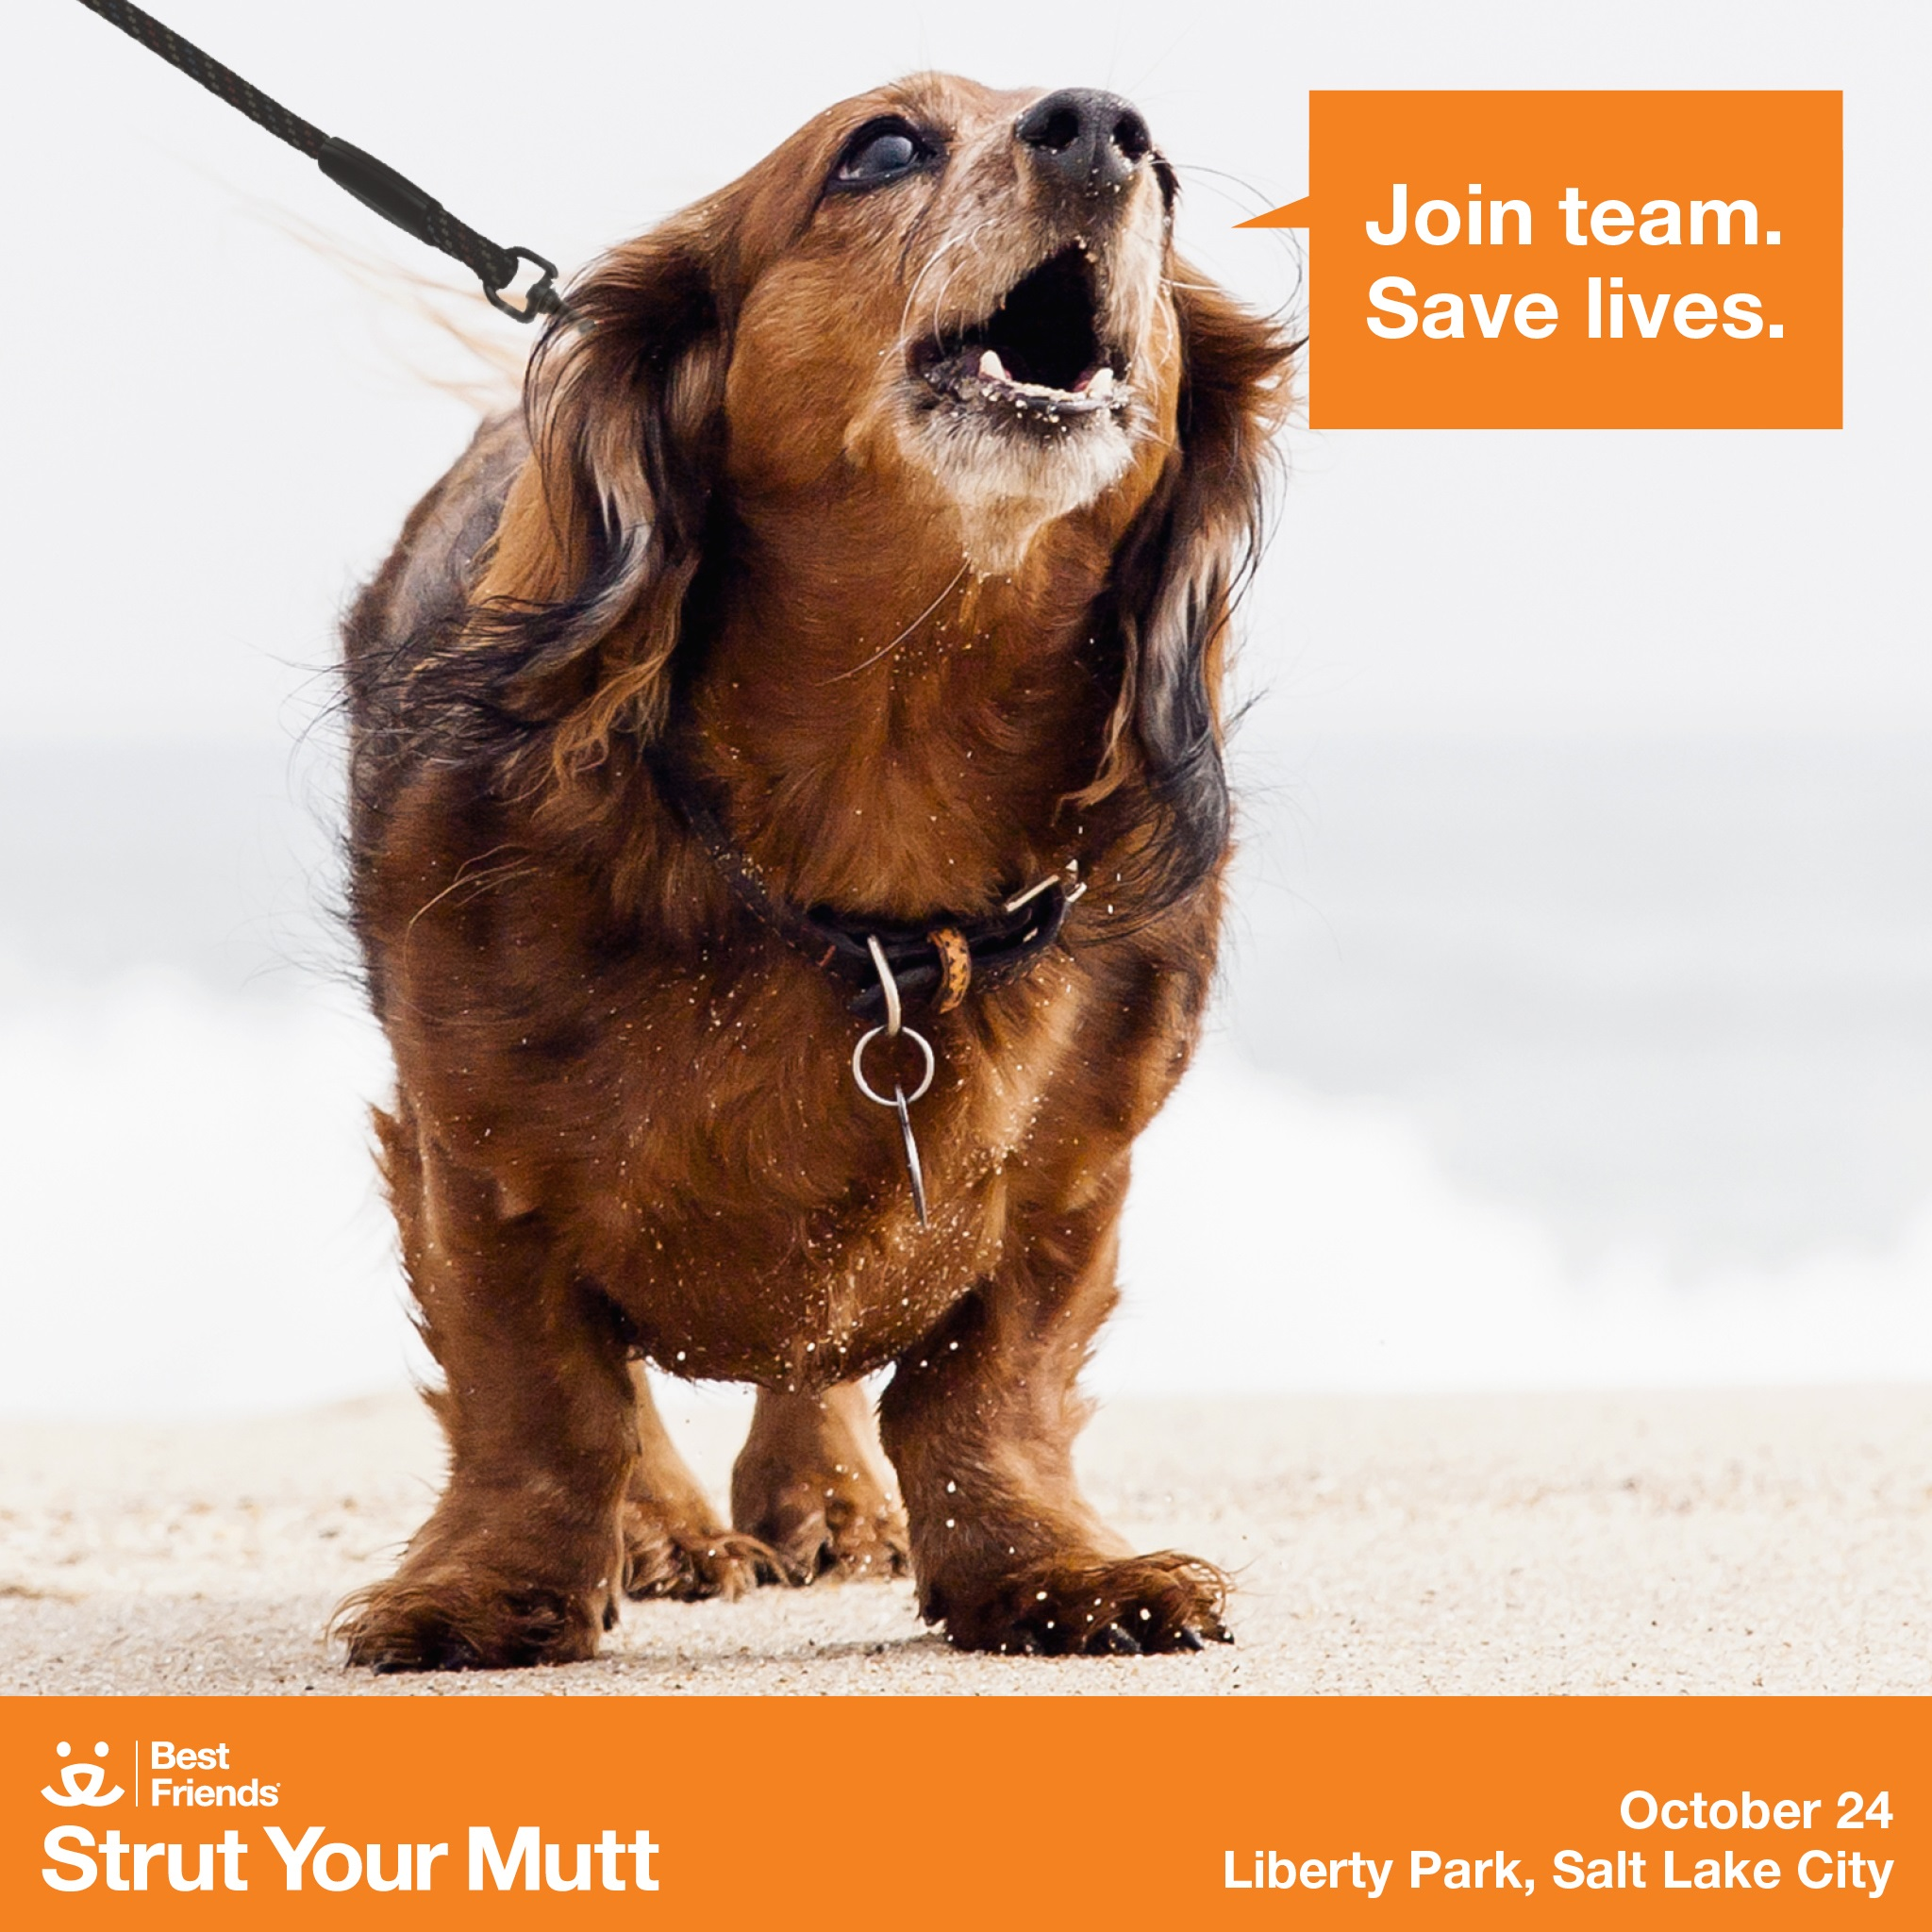 Strut Your Mutt 2015 - Join team. Save lives.